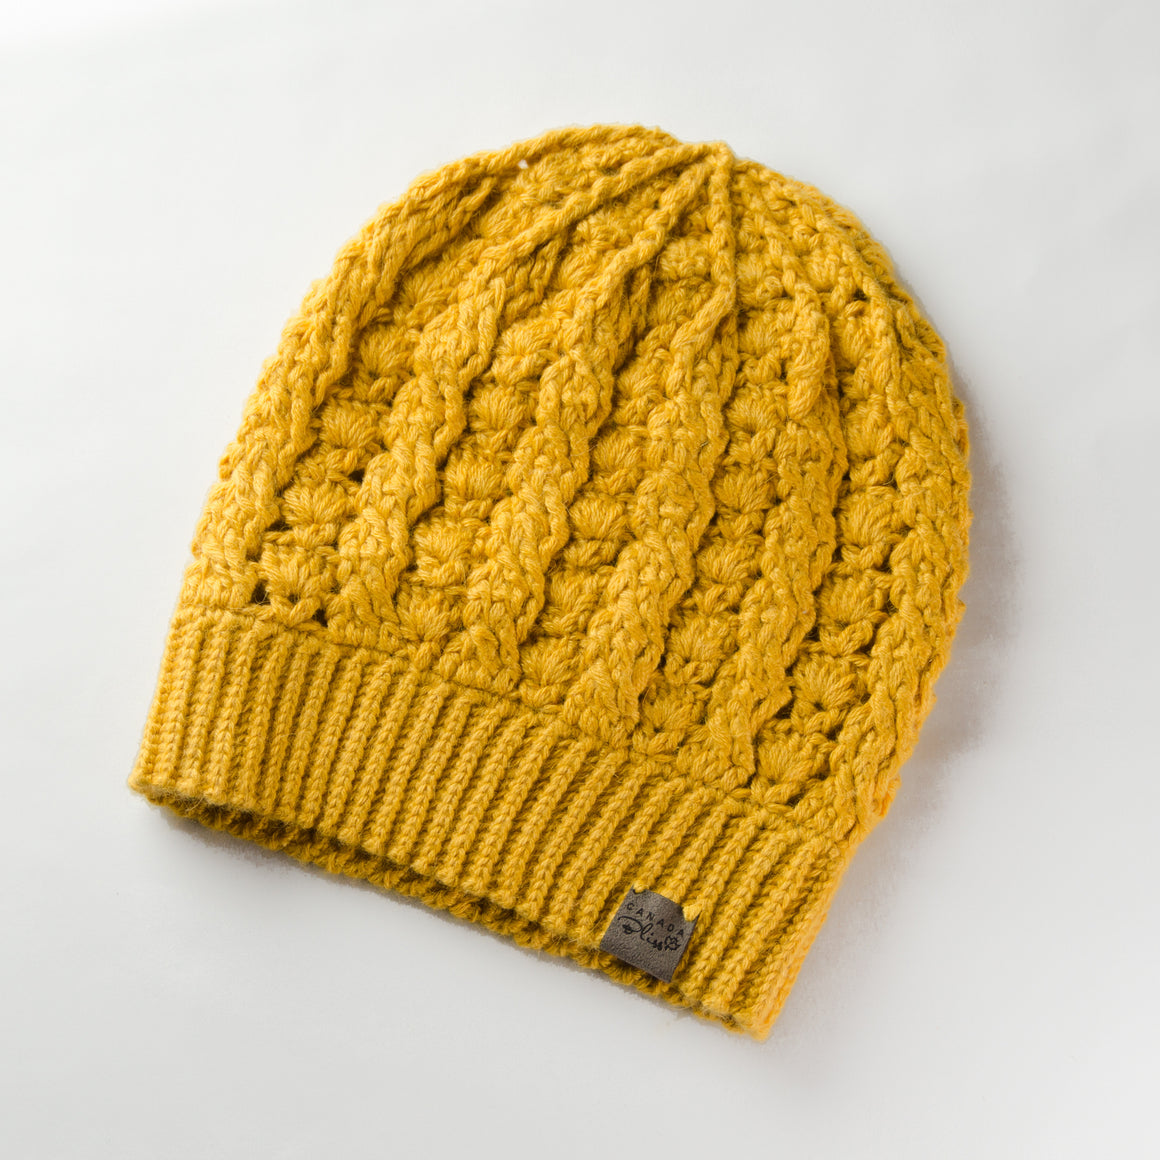 Yellow Dreams Pom Pom Hat Baby Alpaca Crochet Knit Hat Canada Bliss Hot Accessories Celebrity Fashion Style Beanie Fall Winter Fashion